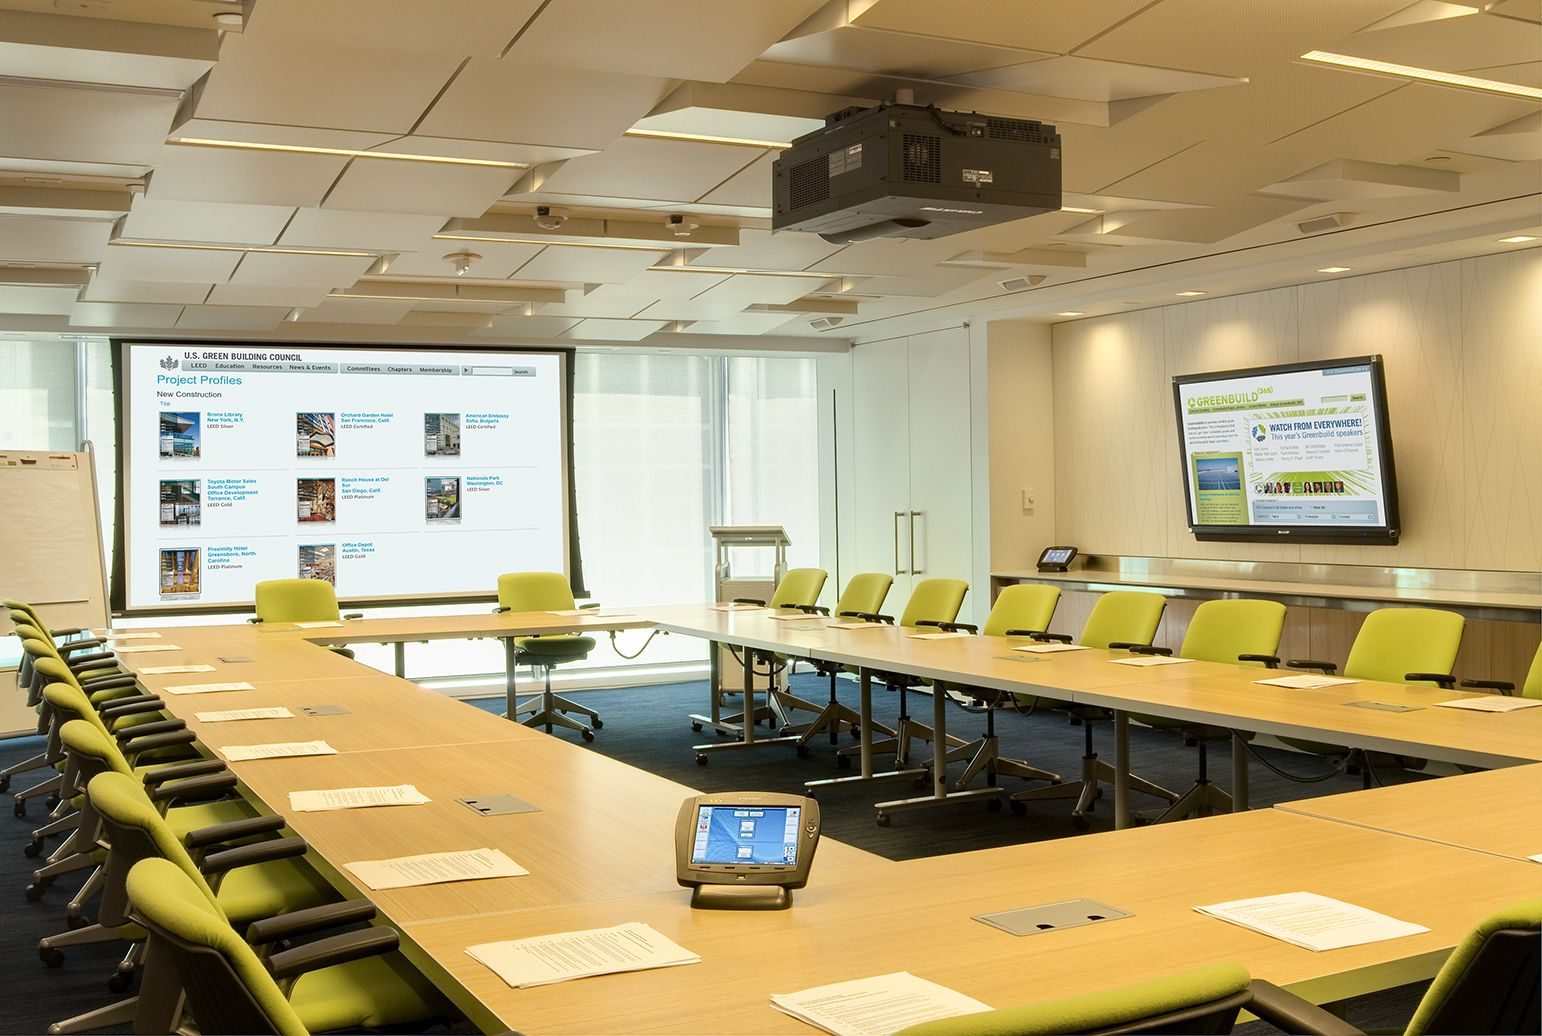 U s green building council conference room table open for Office room layout